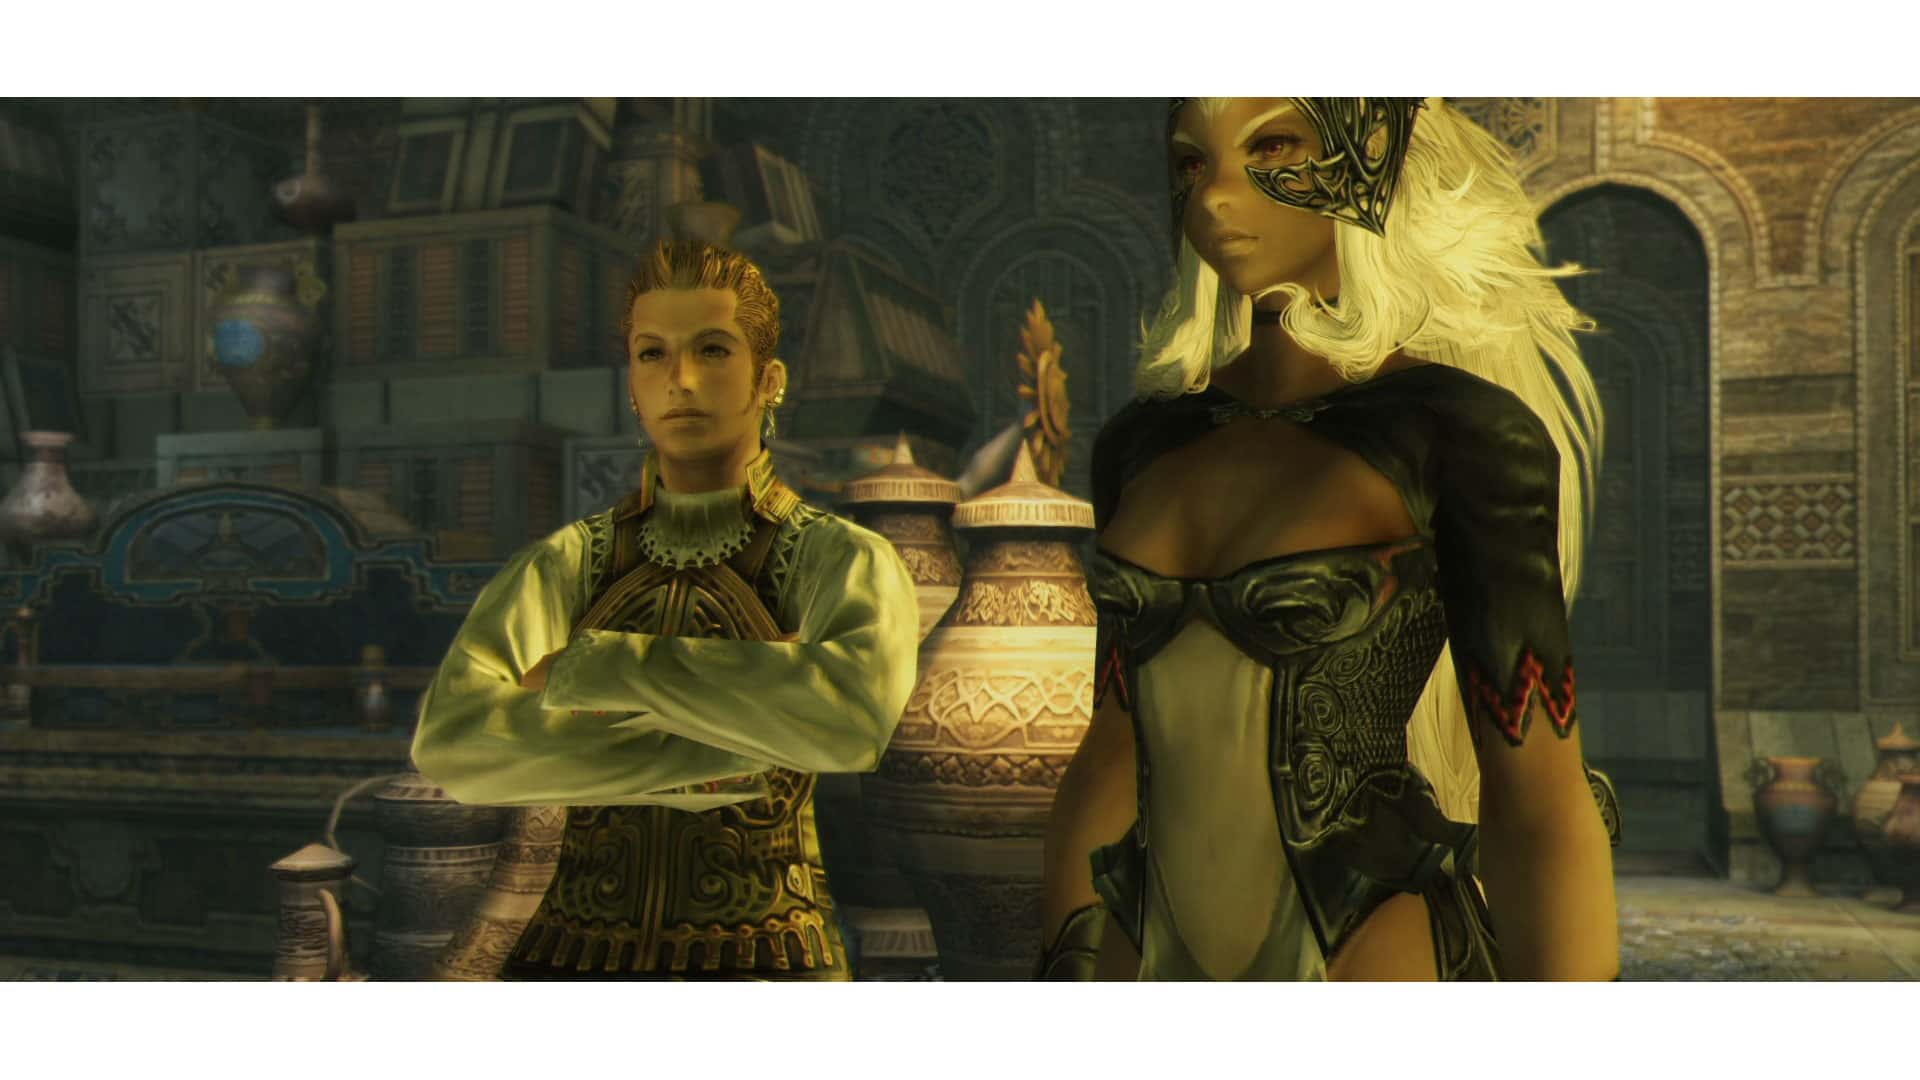 final_fantasy_xii_the_zodiac_age_screenshot_05